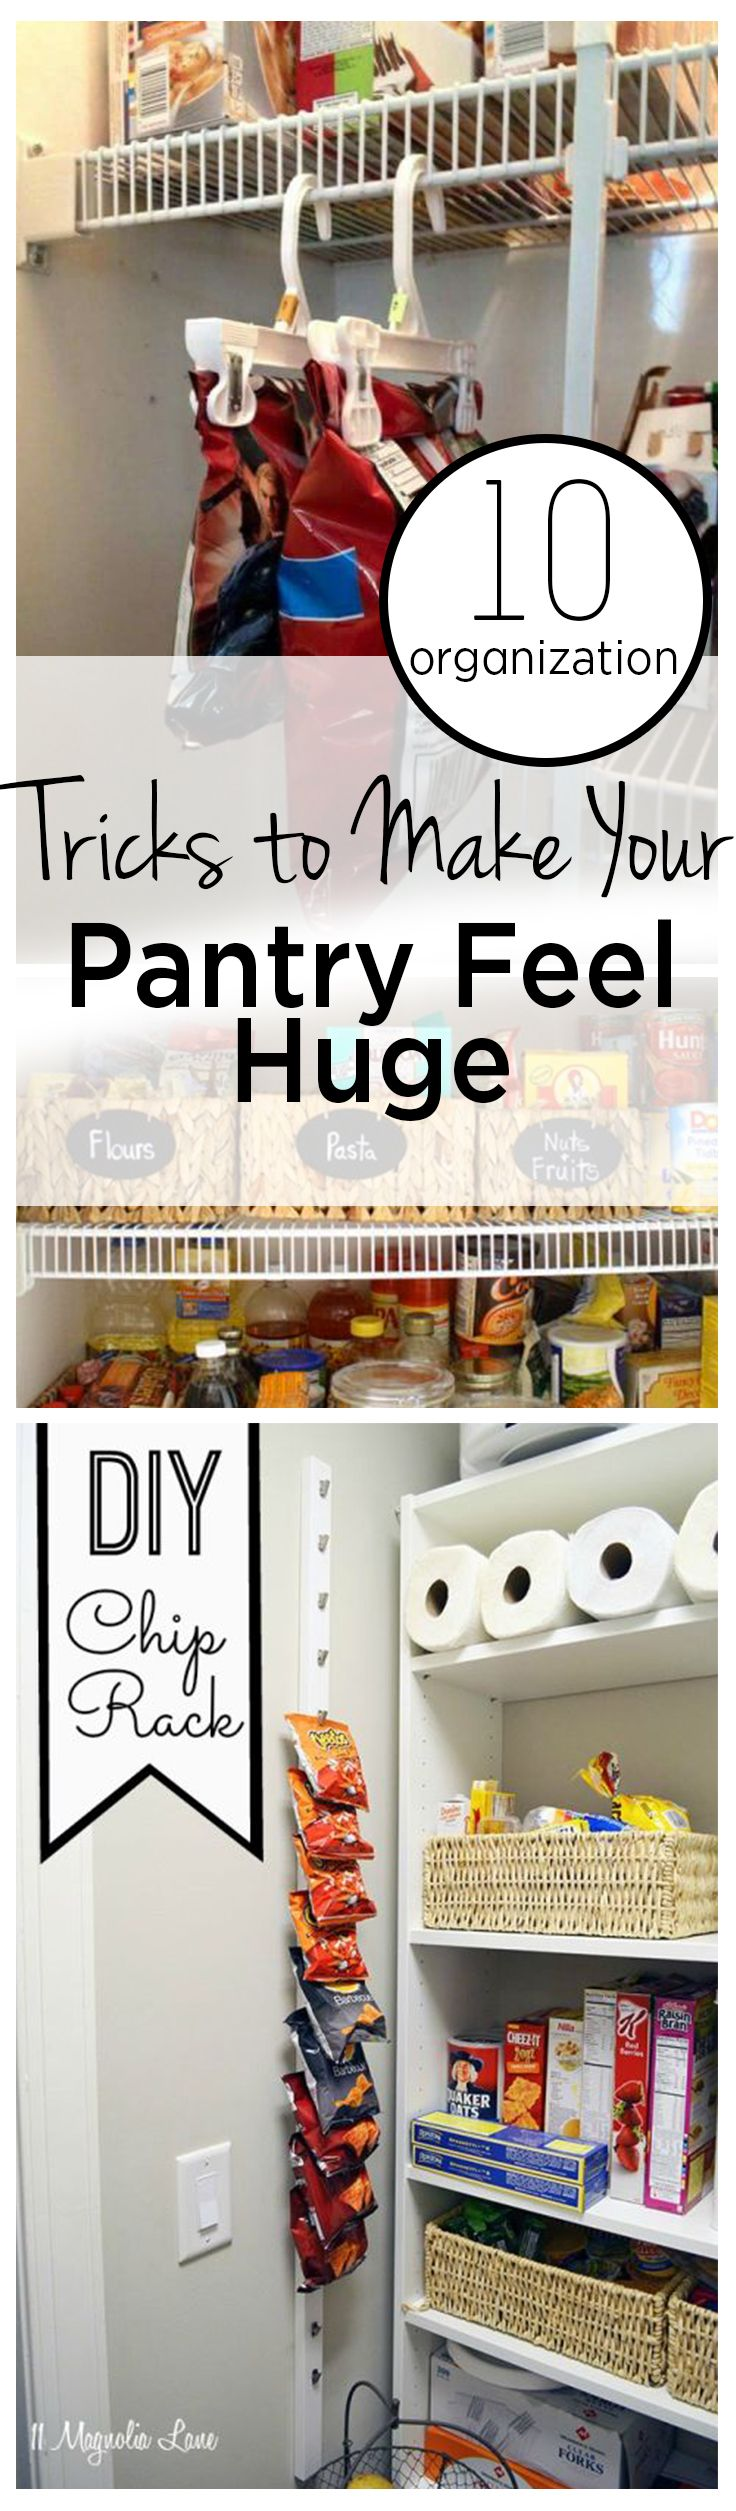 Pantry Organziation, Pantry Organization Tips, Manage Pantry Clutter, How to Tame Pantry Clutter, Organization, Kitchen Organization, Popular Pin